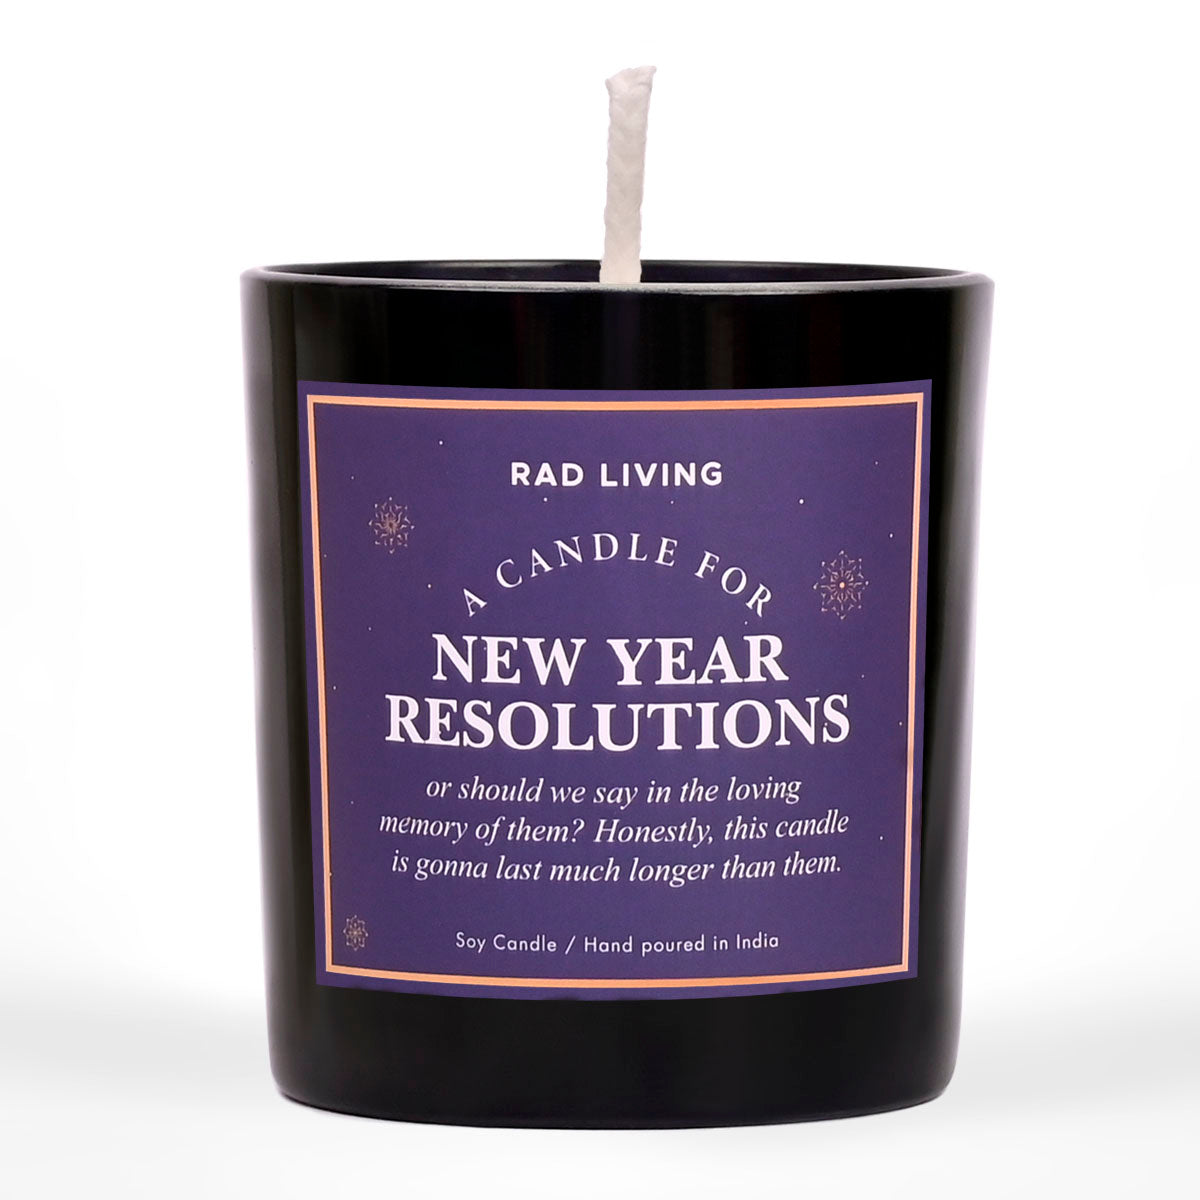 New Year Resolutions - Hot Cocoa Scented Candle